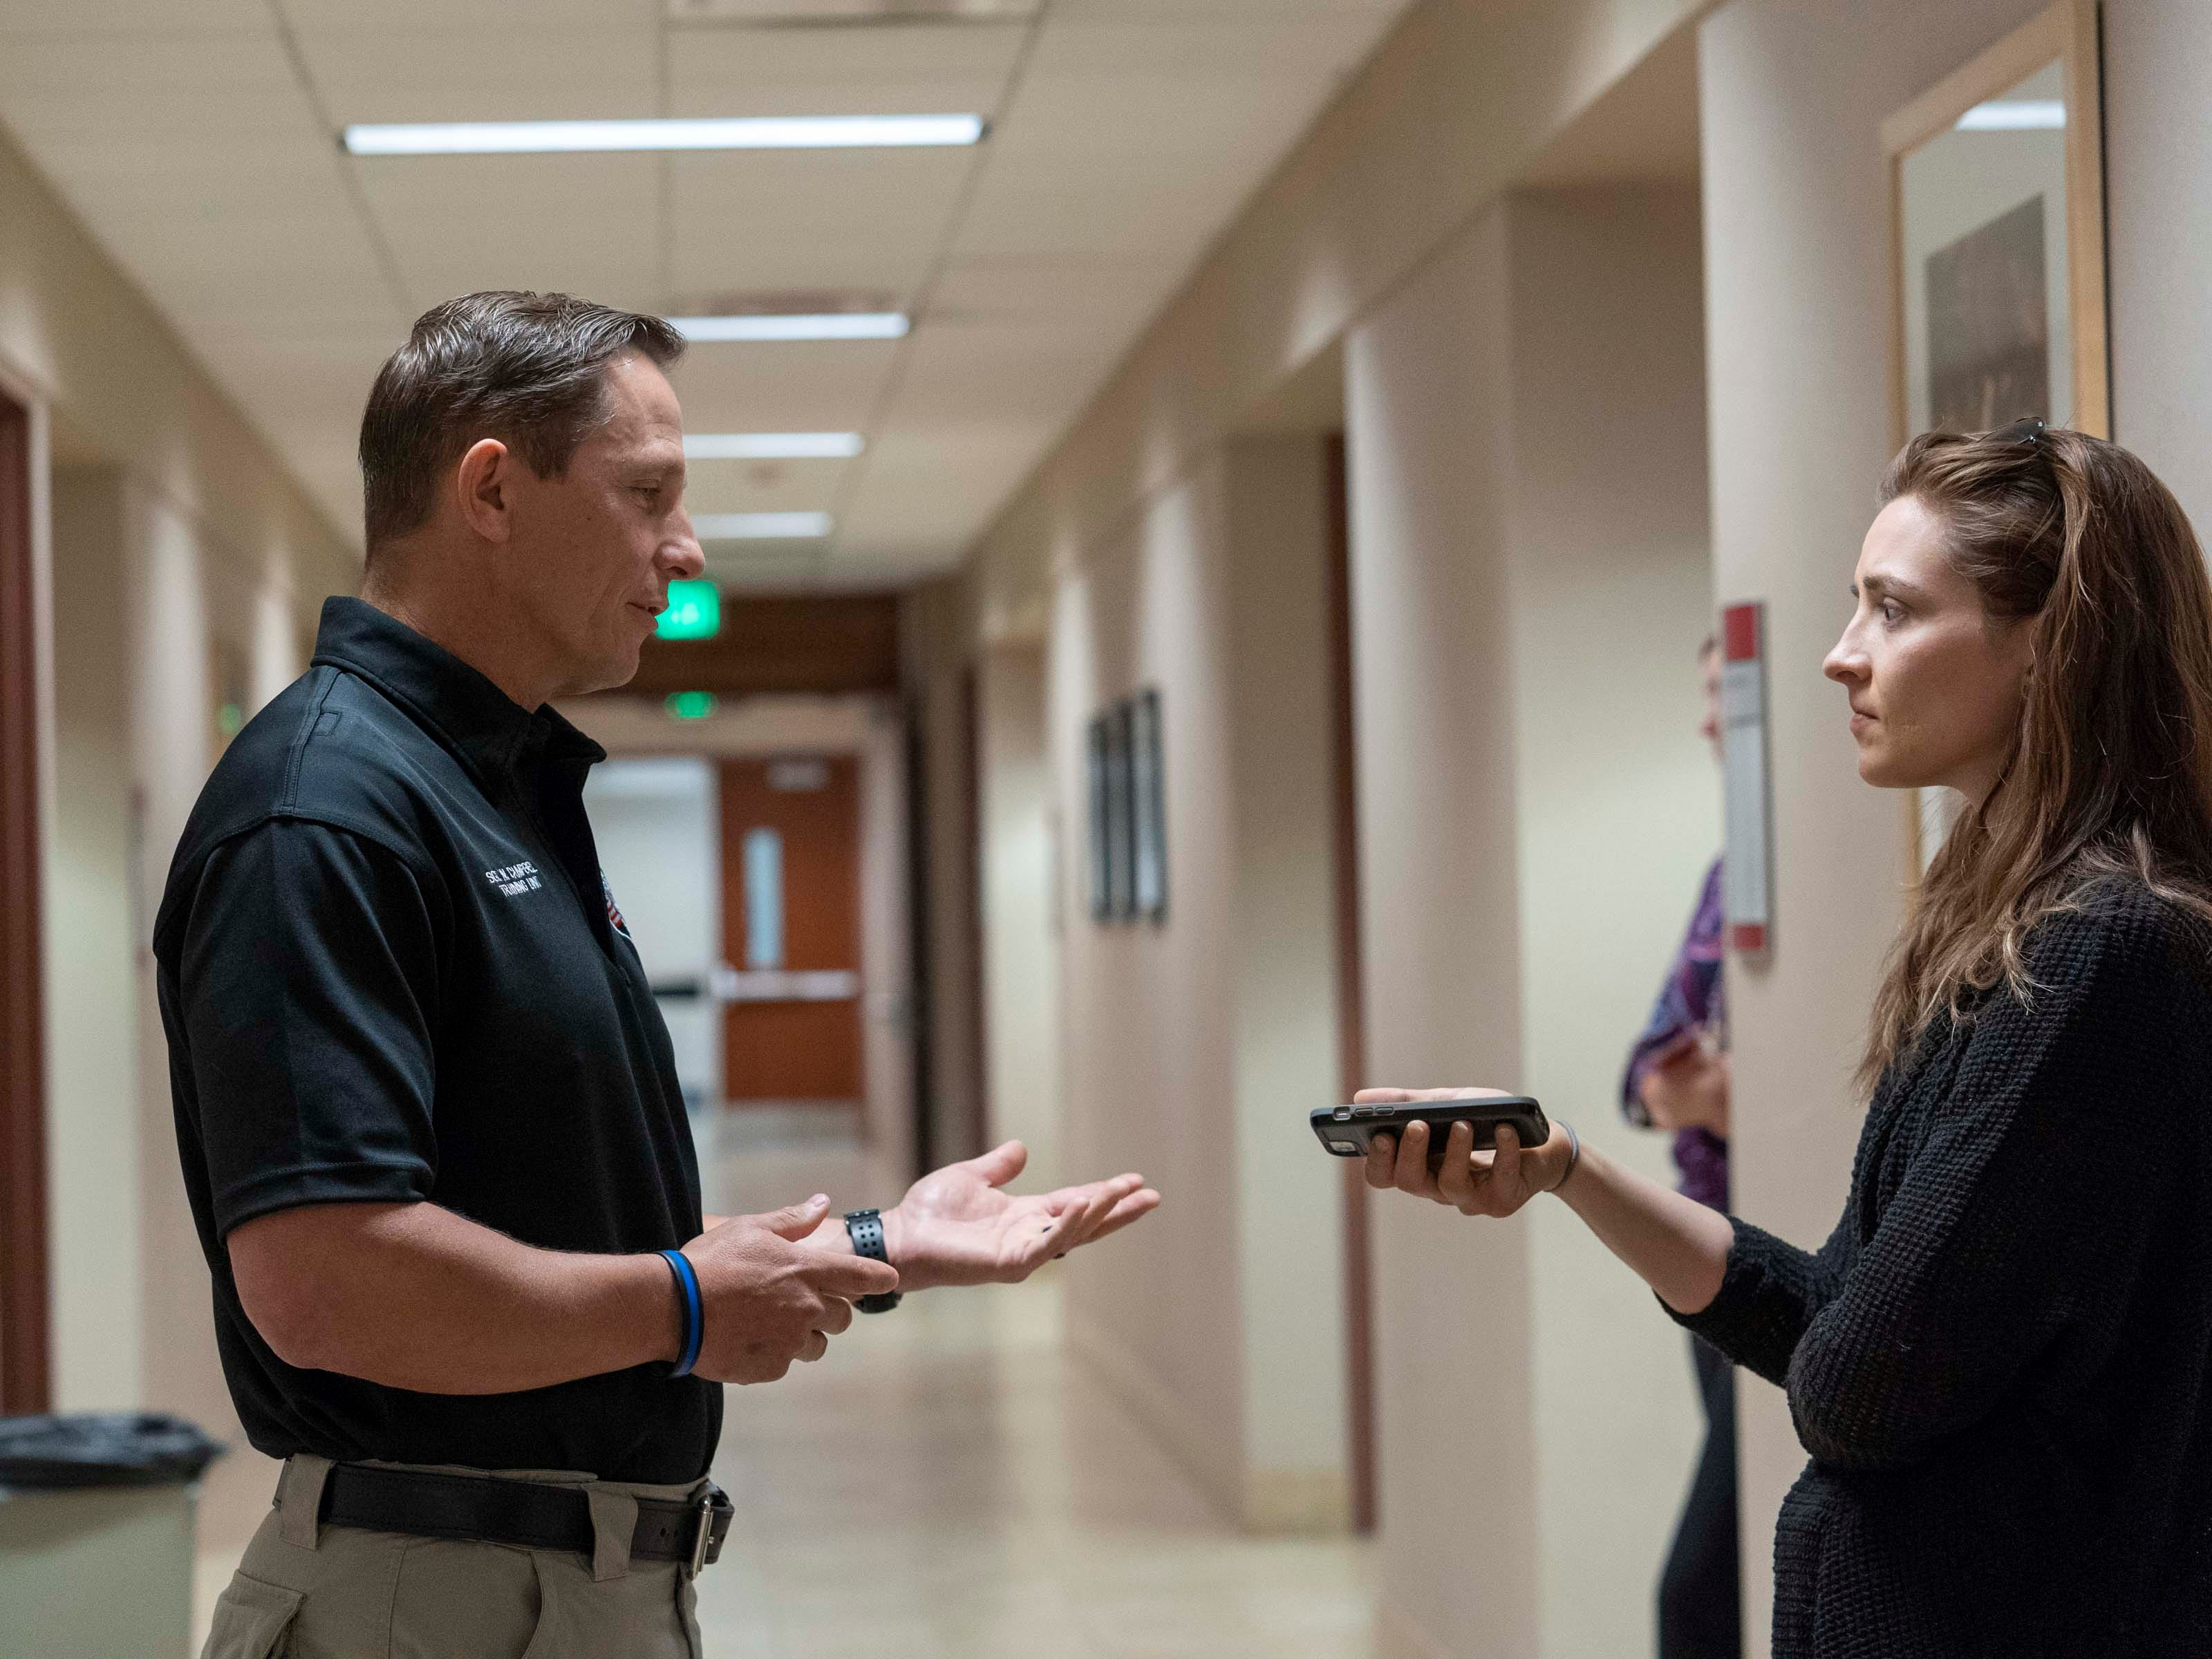 Gilbert Police, Bill Campbell talks to Arizona Republic reporter Bree Burkitt about partnering with the Arizona Commission for the Deaf and Hard of Hearing (ACDHH) to navigate the communication barriers between the Deaf and hard of hearing individuals.